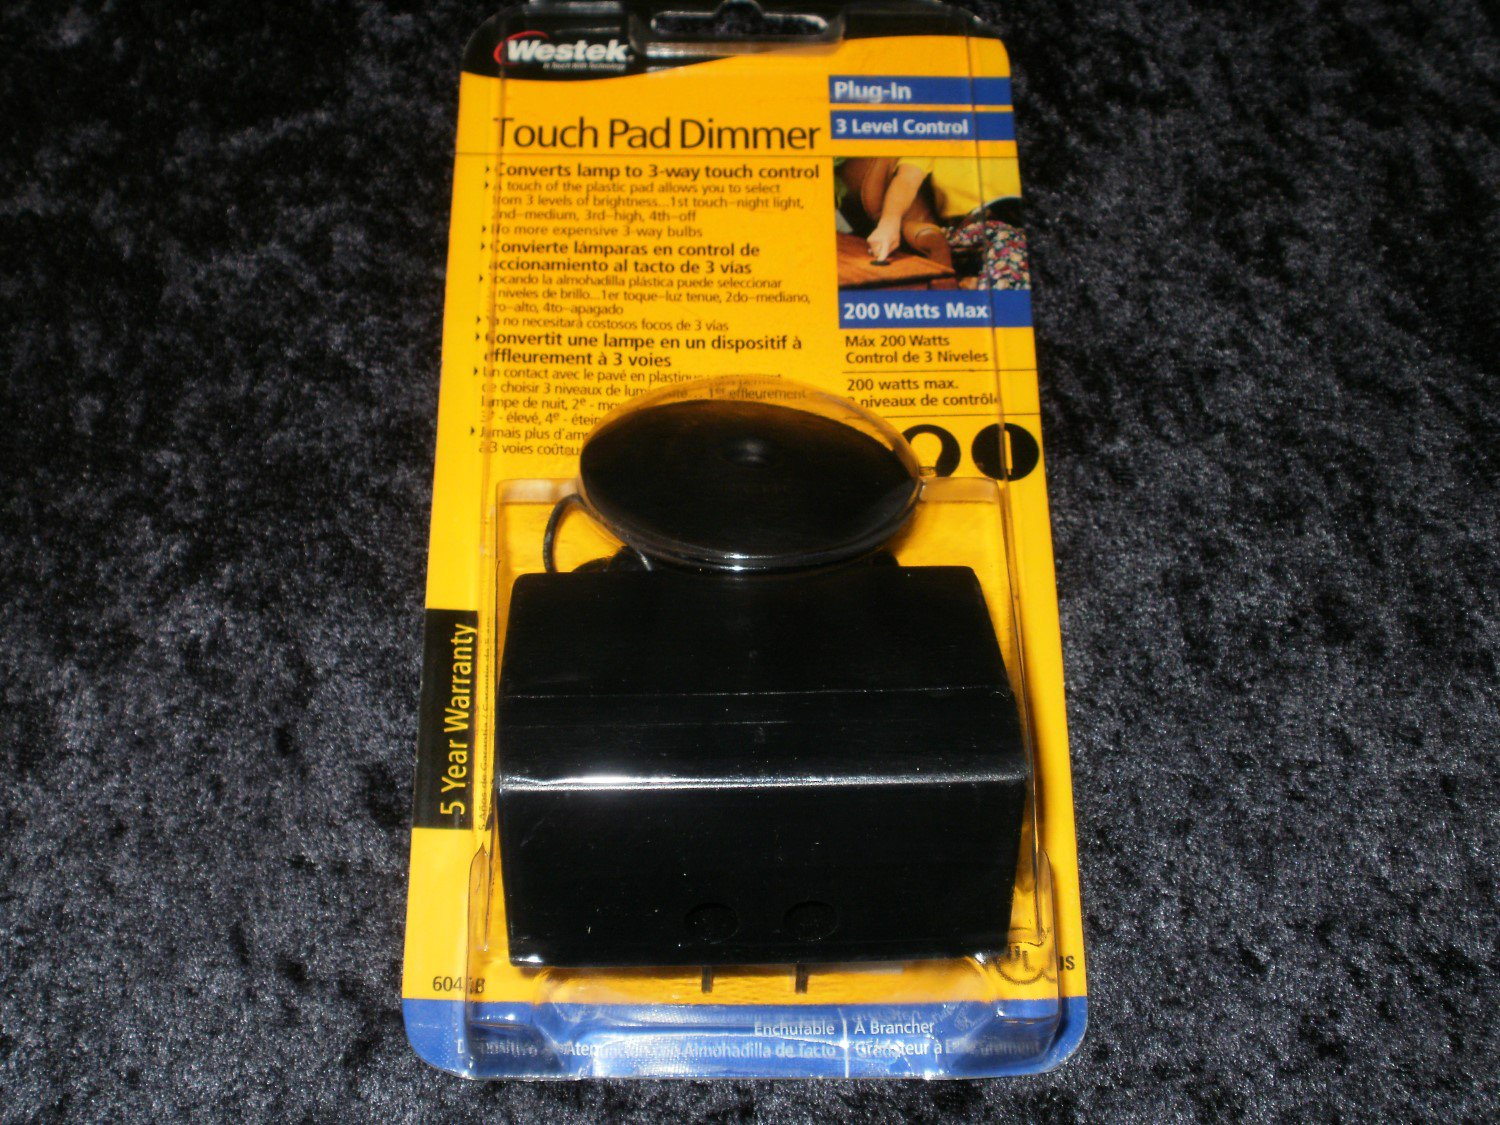 Touch Pad Dimmer - Westek 2006 - Brand New